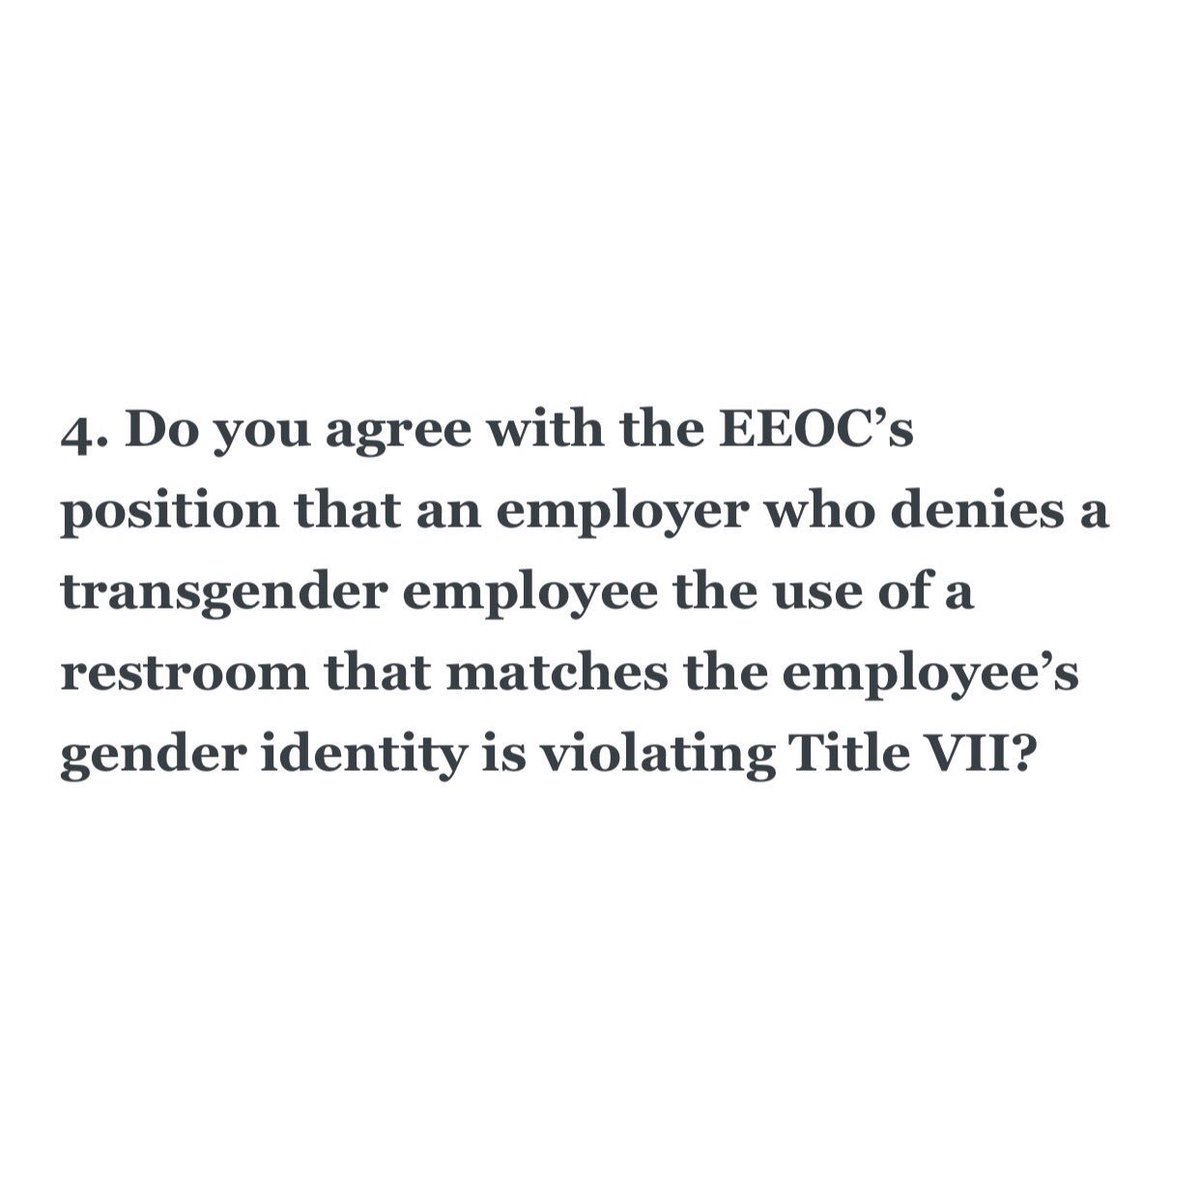 The EEOC should also work to ensure that transgender employees are protected from health coverage discrimination #EqualPay.